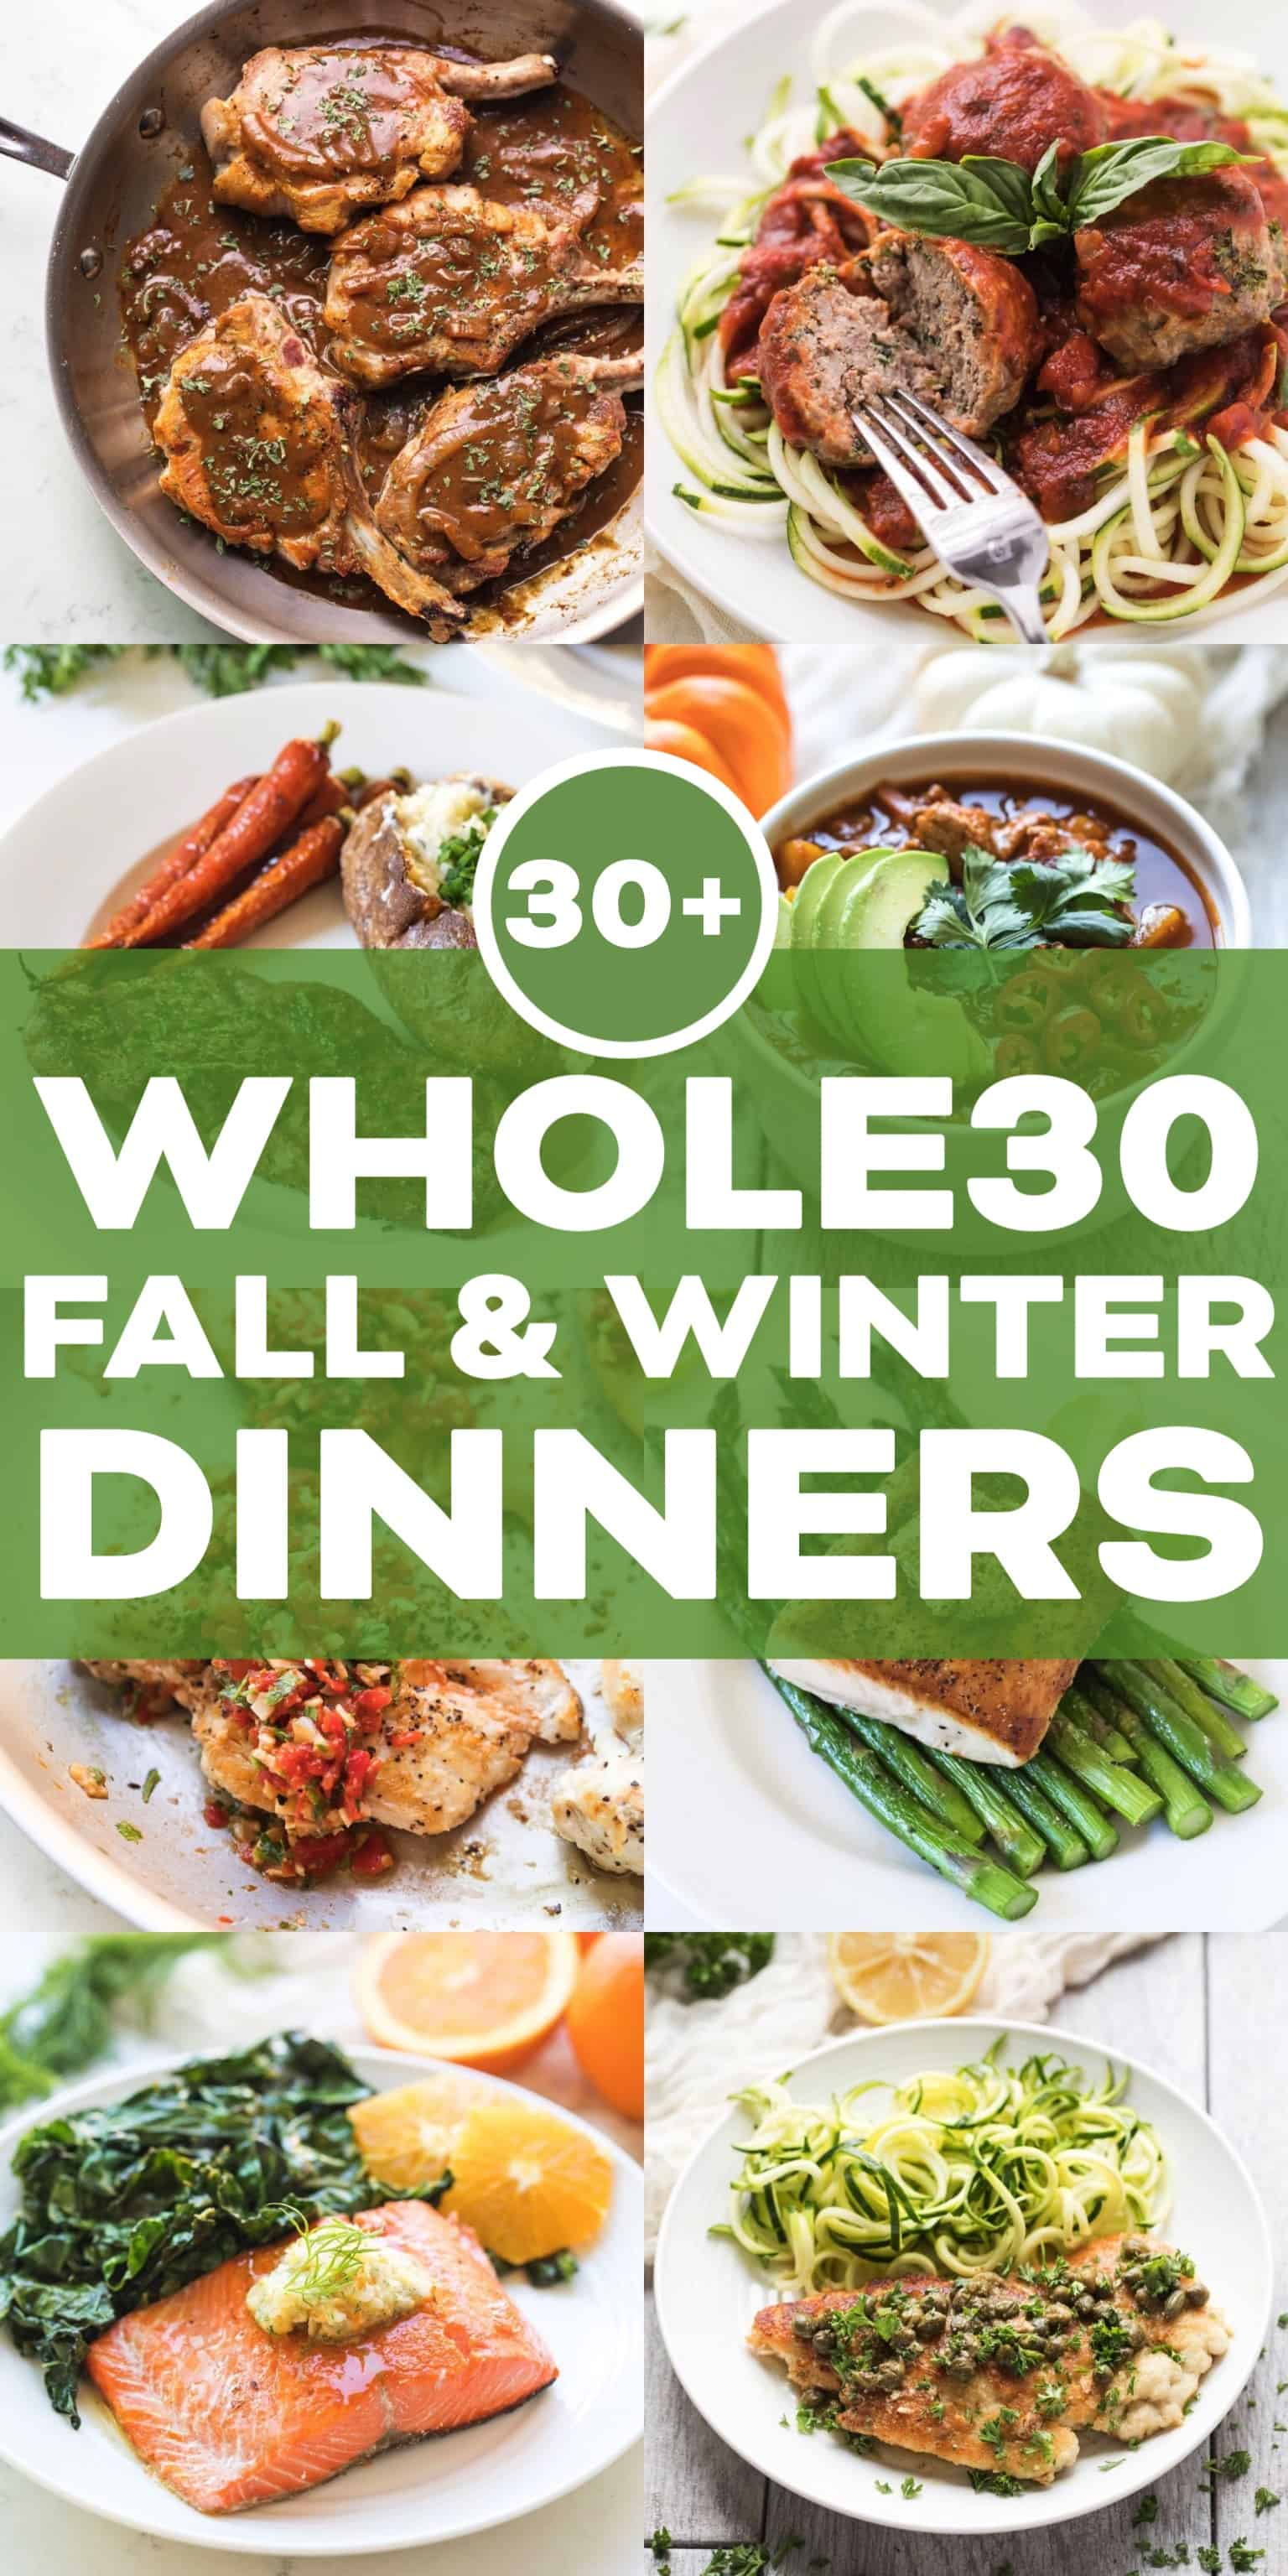 Whole30 dinner collage